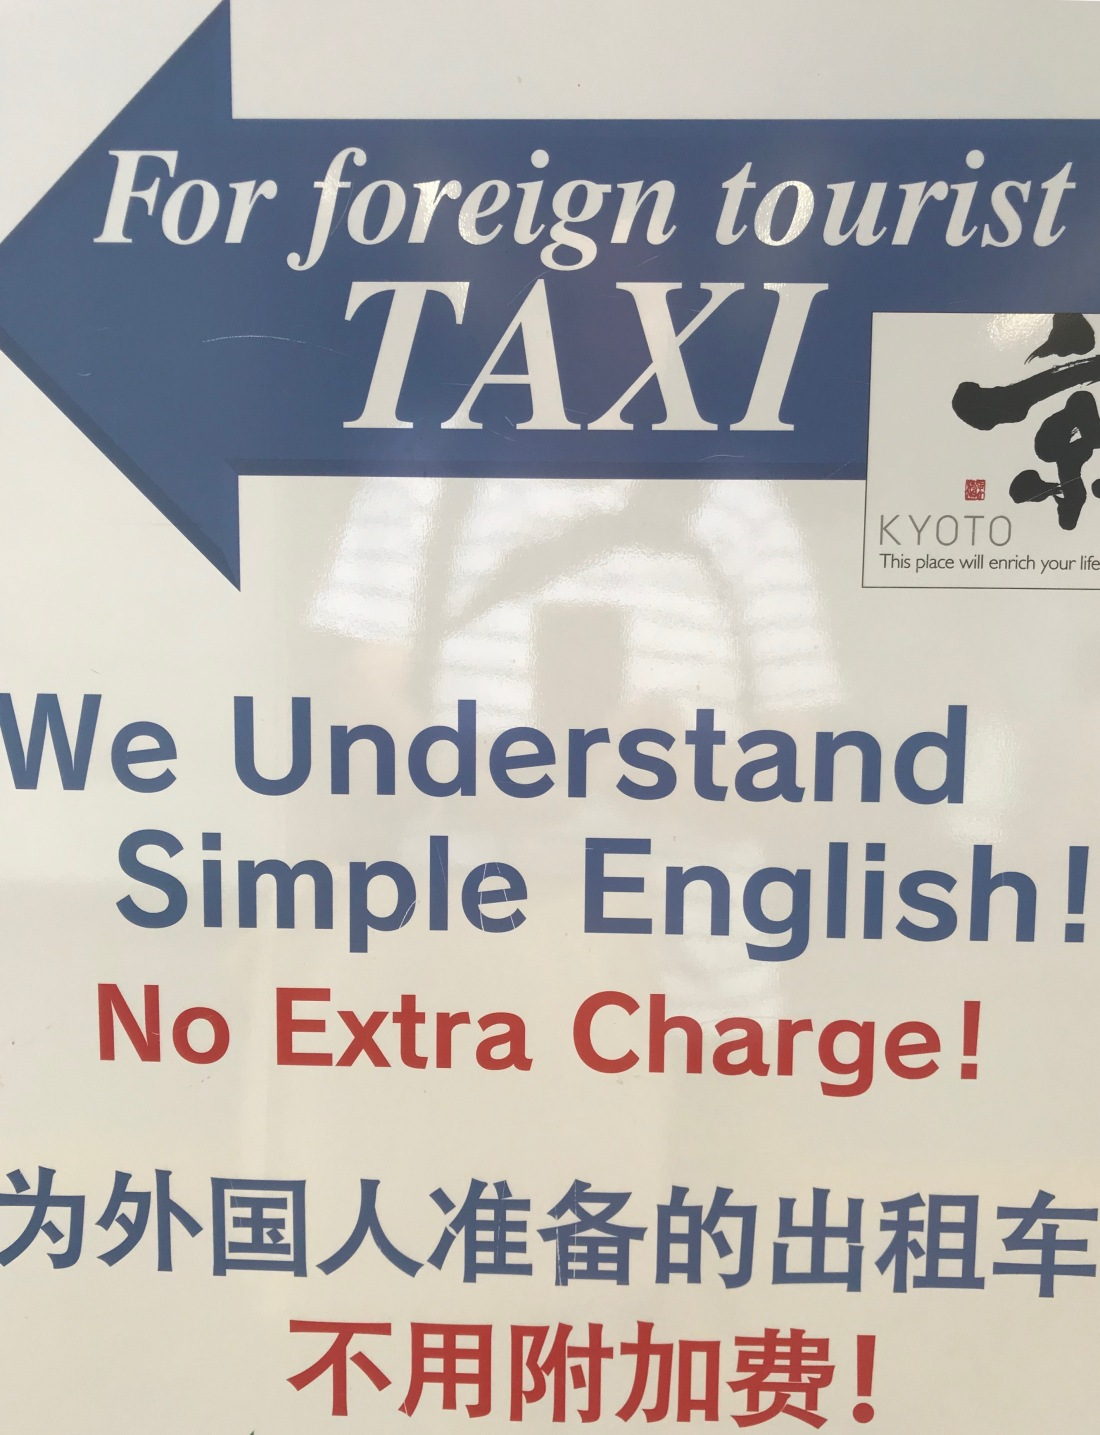 we understand english kyoto taxi